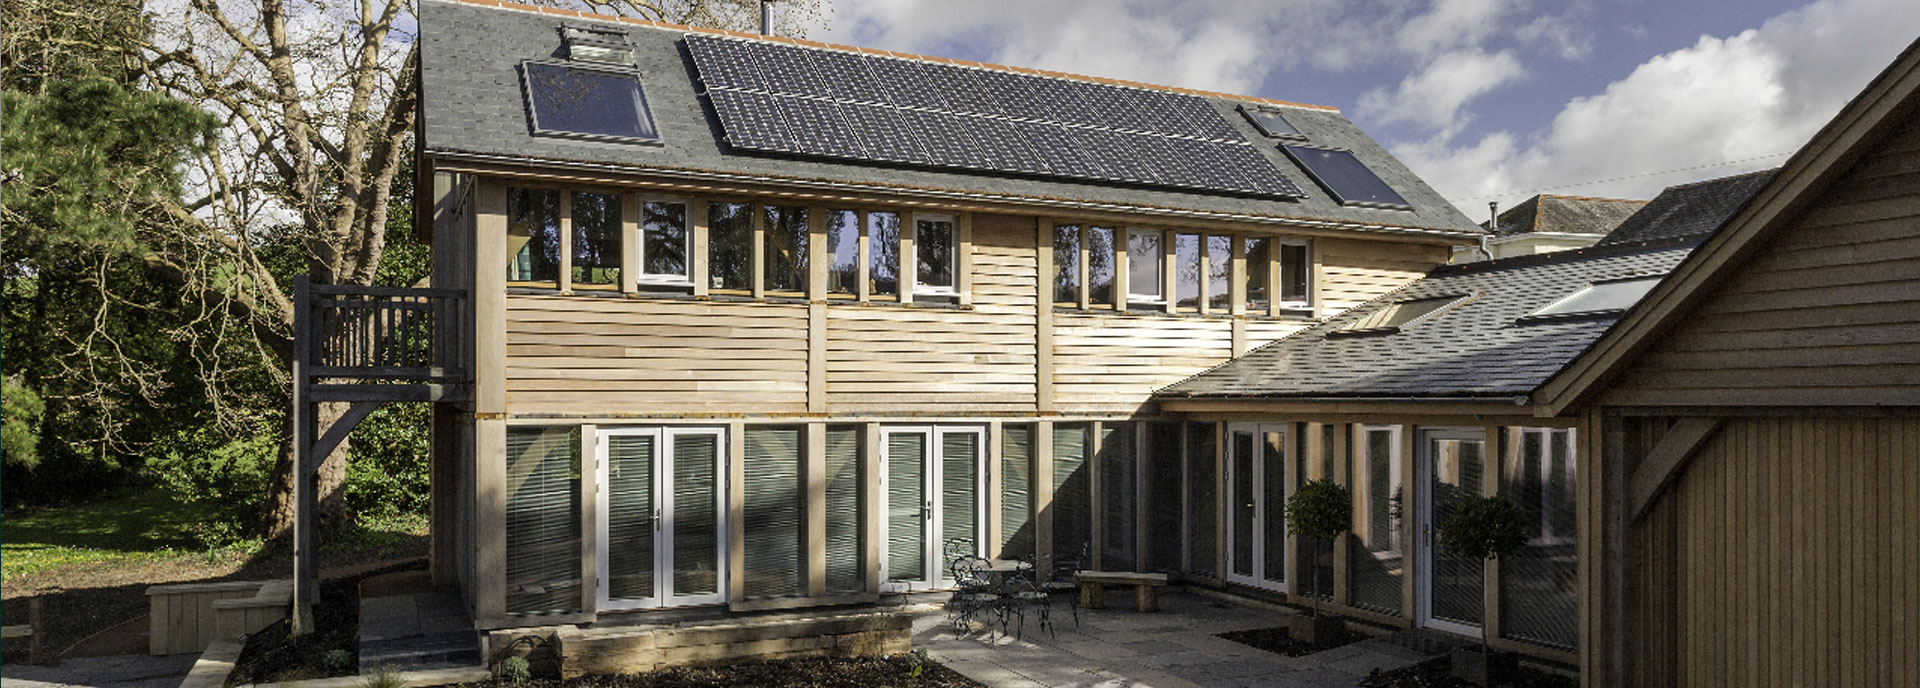 Solar For Home